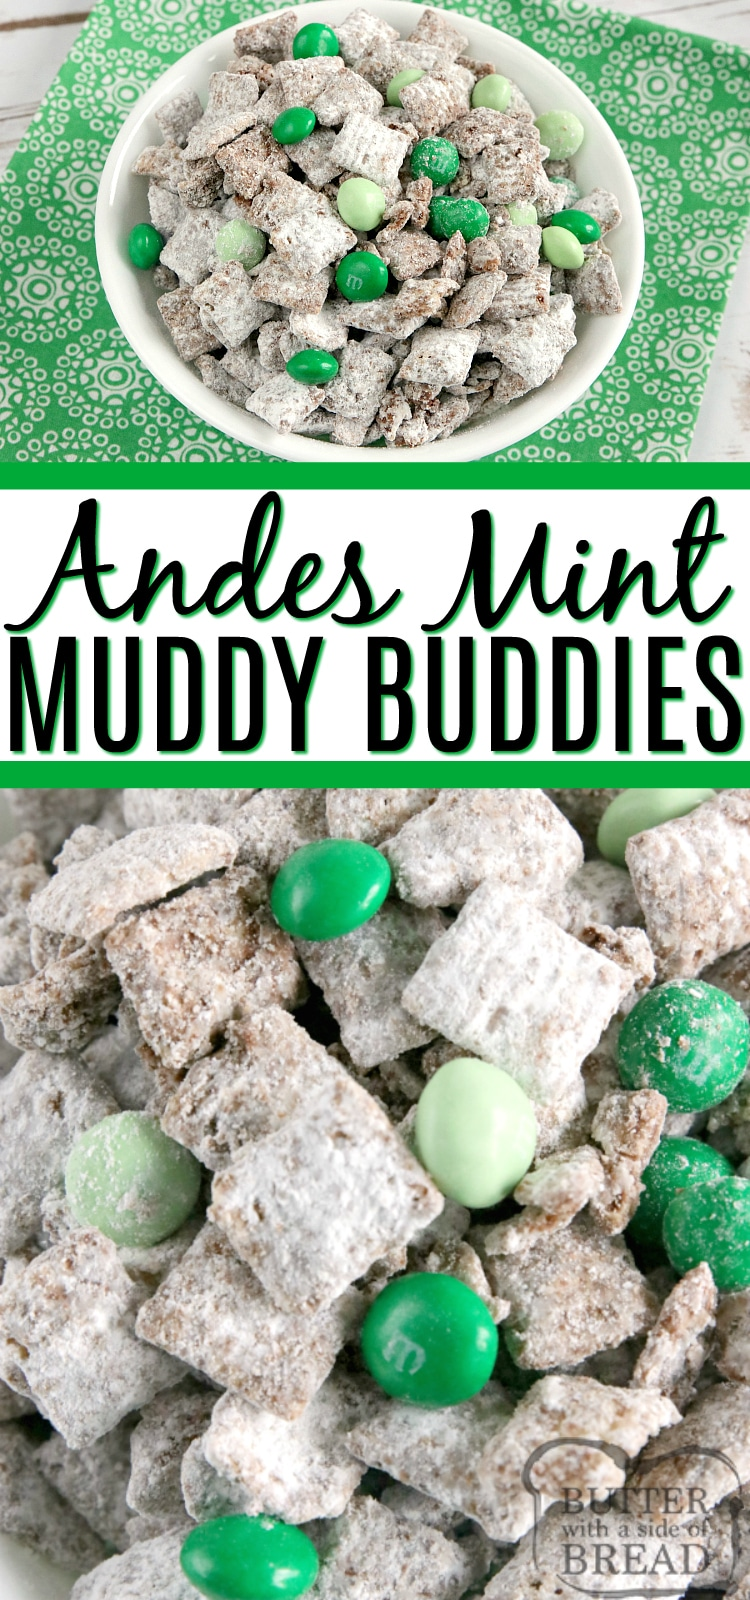 Mint Muddy Buddies are made in just a few minutes with only 5 ingredients! The chocolate mint coating is made by melting Andes mints - so easy and delicious! #glutenfree #stpatricksday #chexmix #dessert #nobake #mint #chocolate #M&Ms